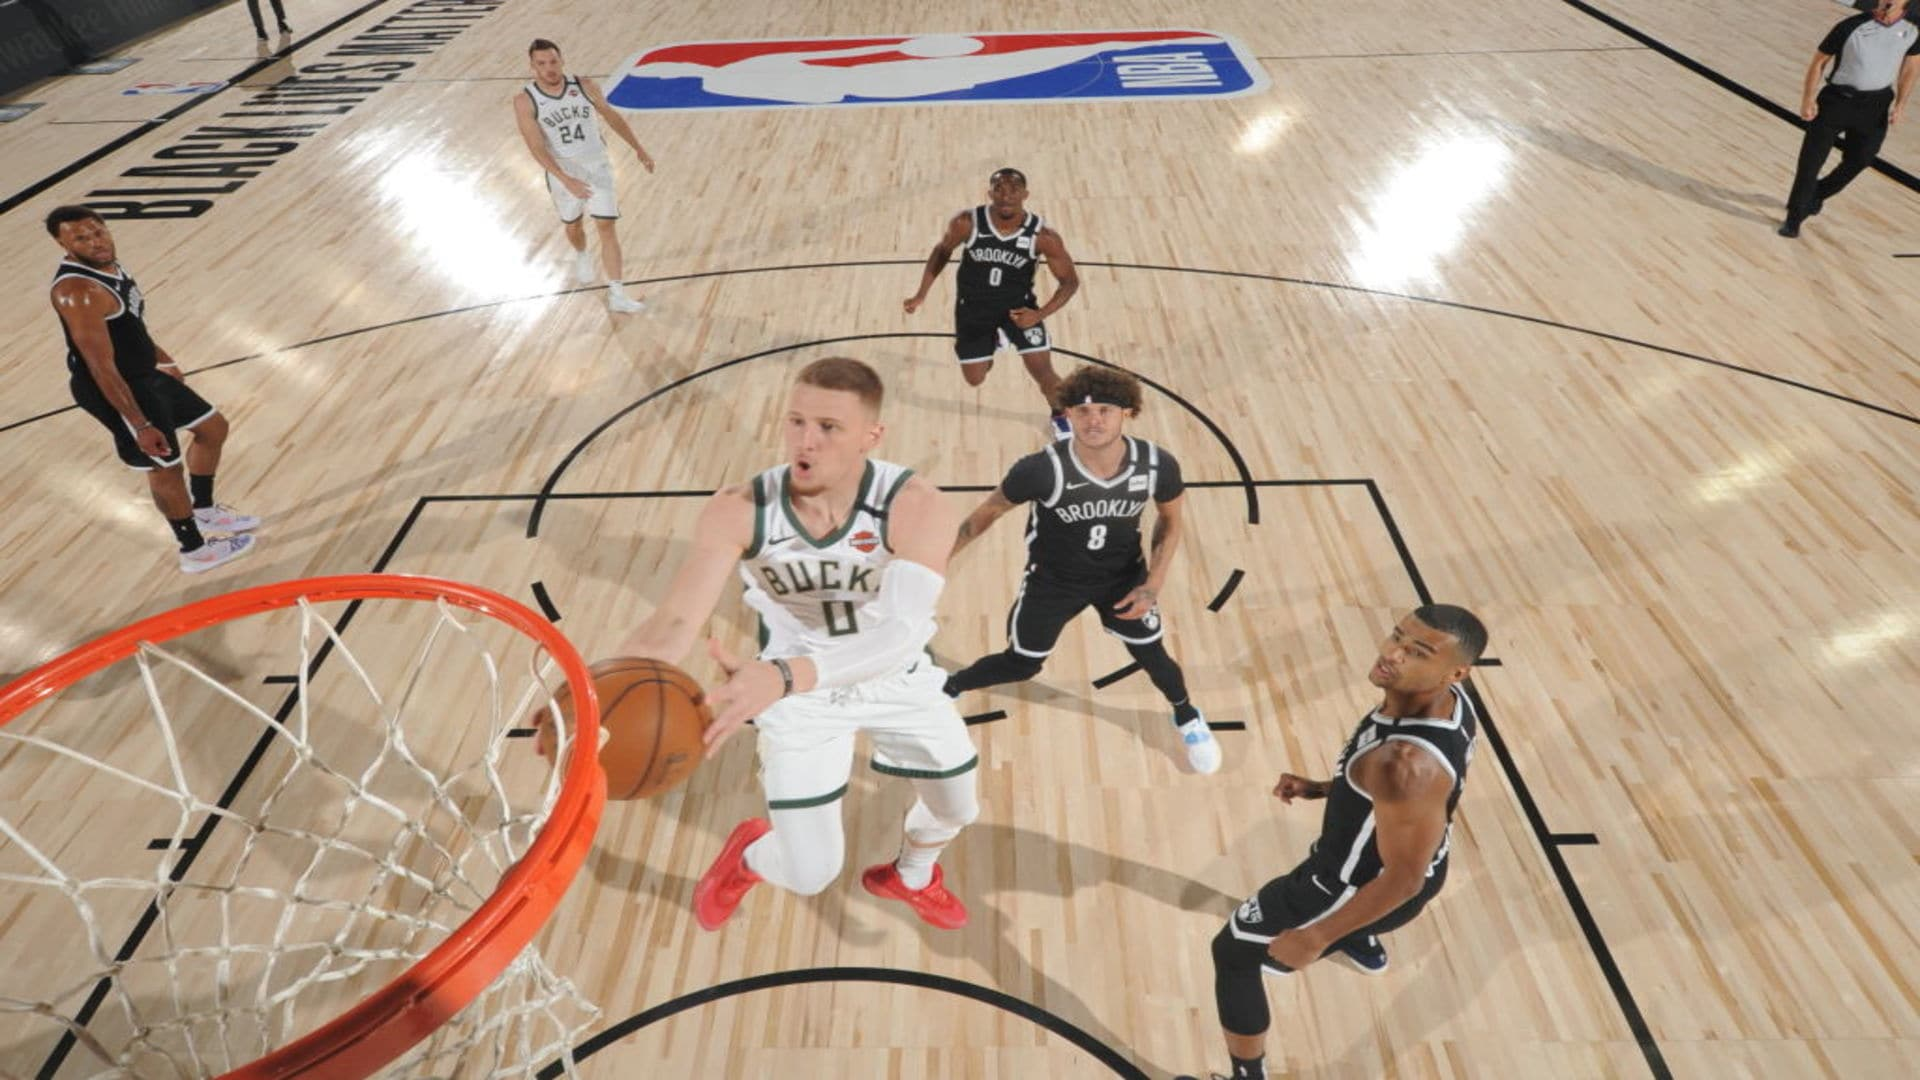 Game Highlights: Bucks 116 - Nets 119 | 8.04.20